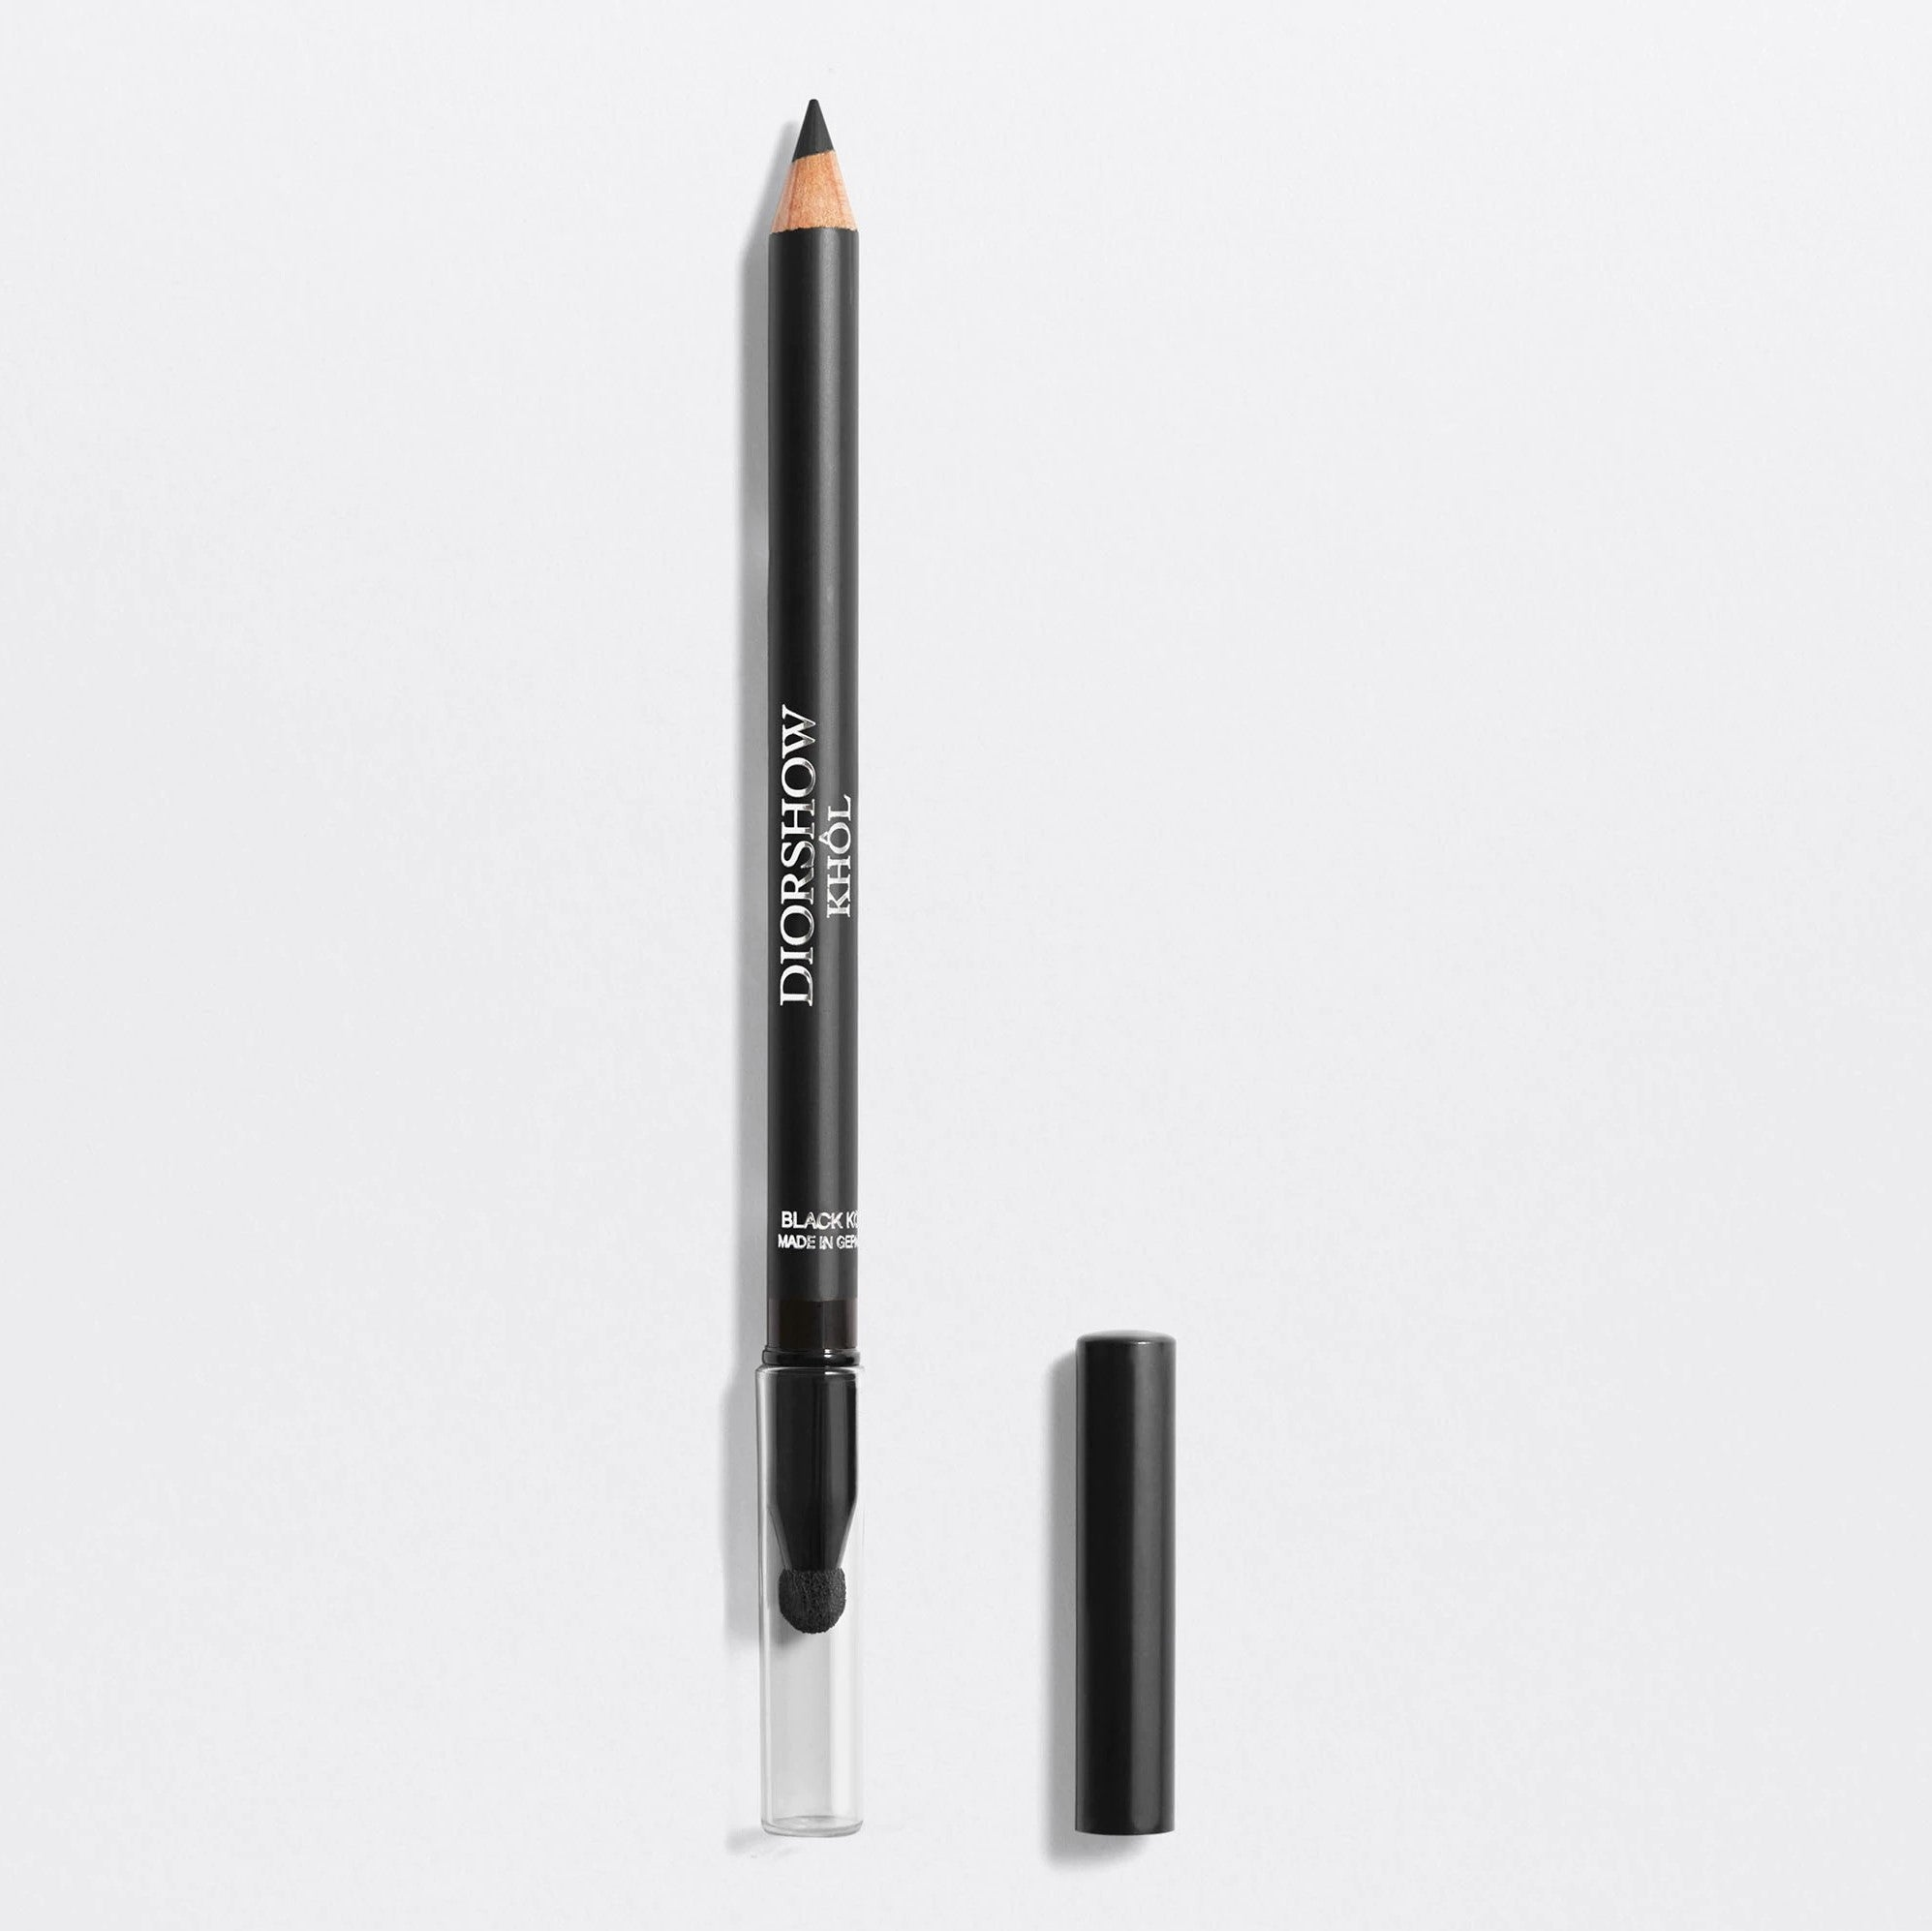 DIORSHOW KHÔL ~ High intensity pencil waterproof hold with blending tip and sharpener